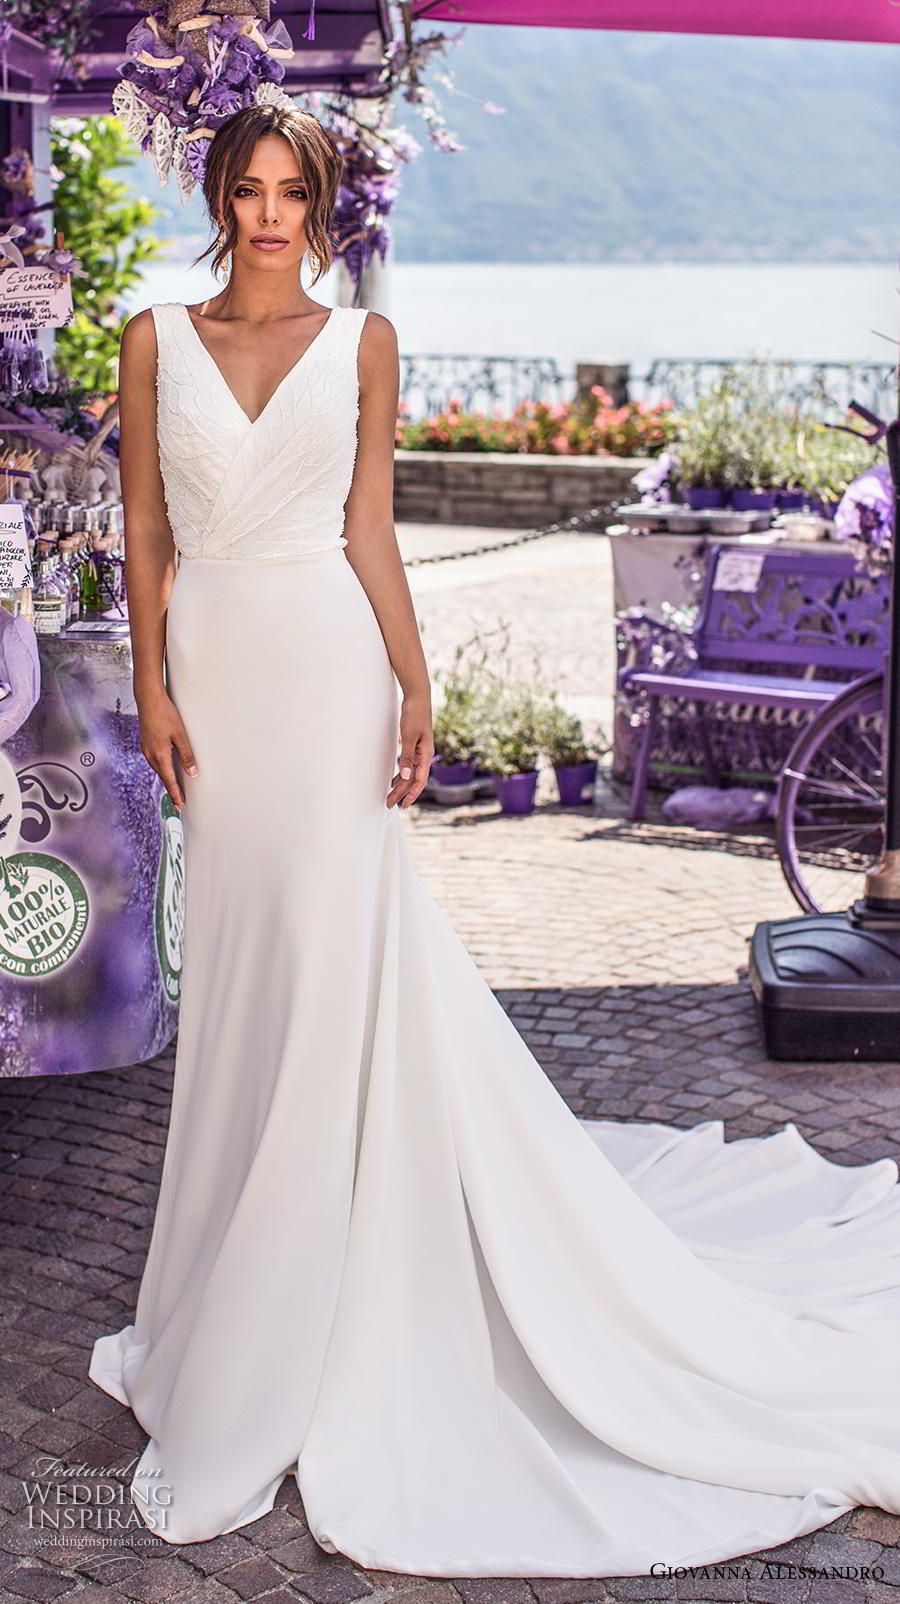 giovanna alessandro 2019 bridal sleeveless v neck wrap over heavily embellished bodice simple sheath wedding dress v back chapel train (2) mv